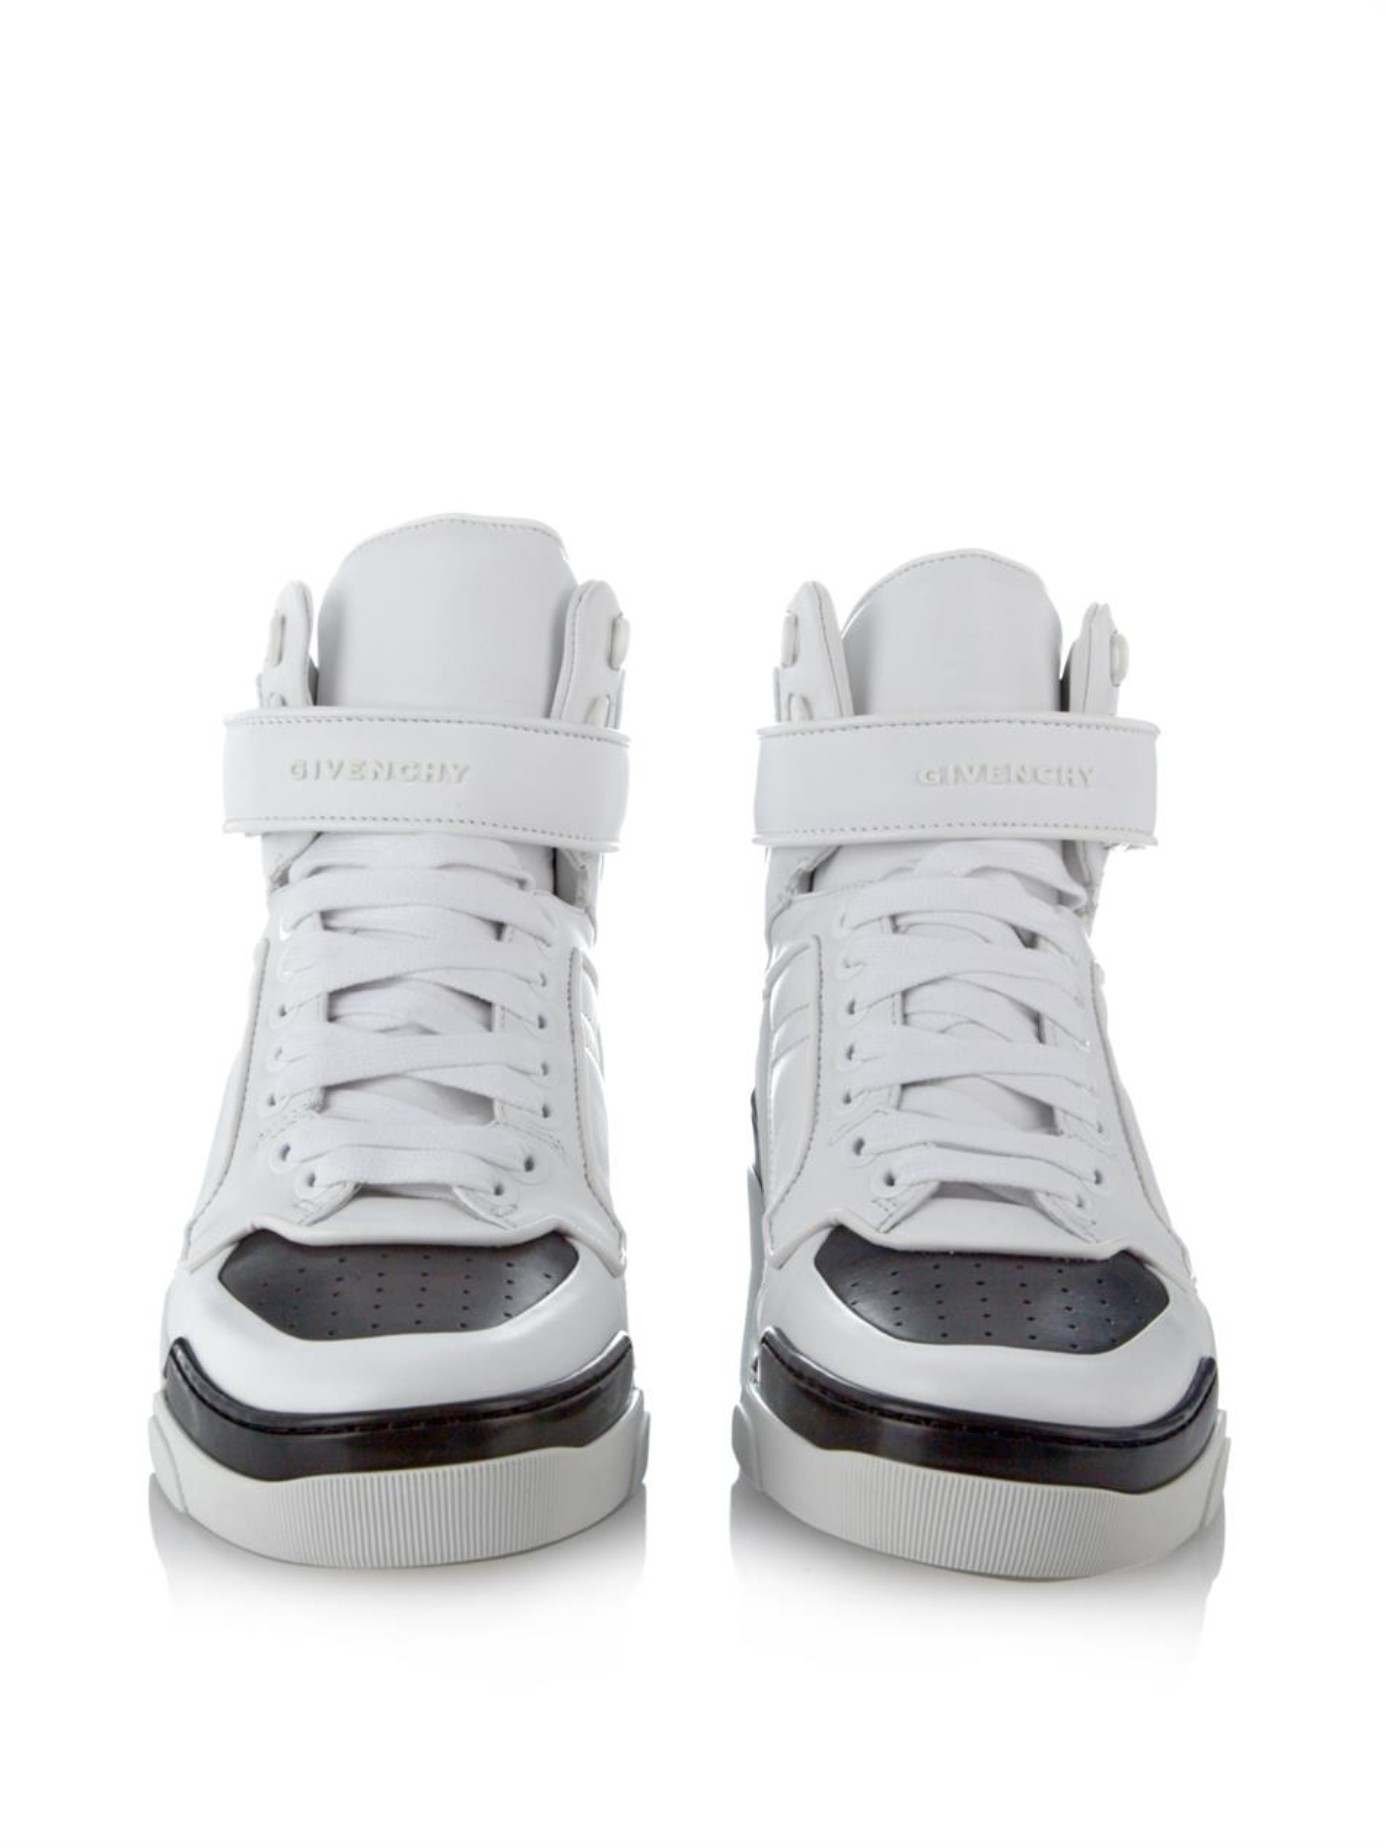 Givenchy sneakers men white